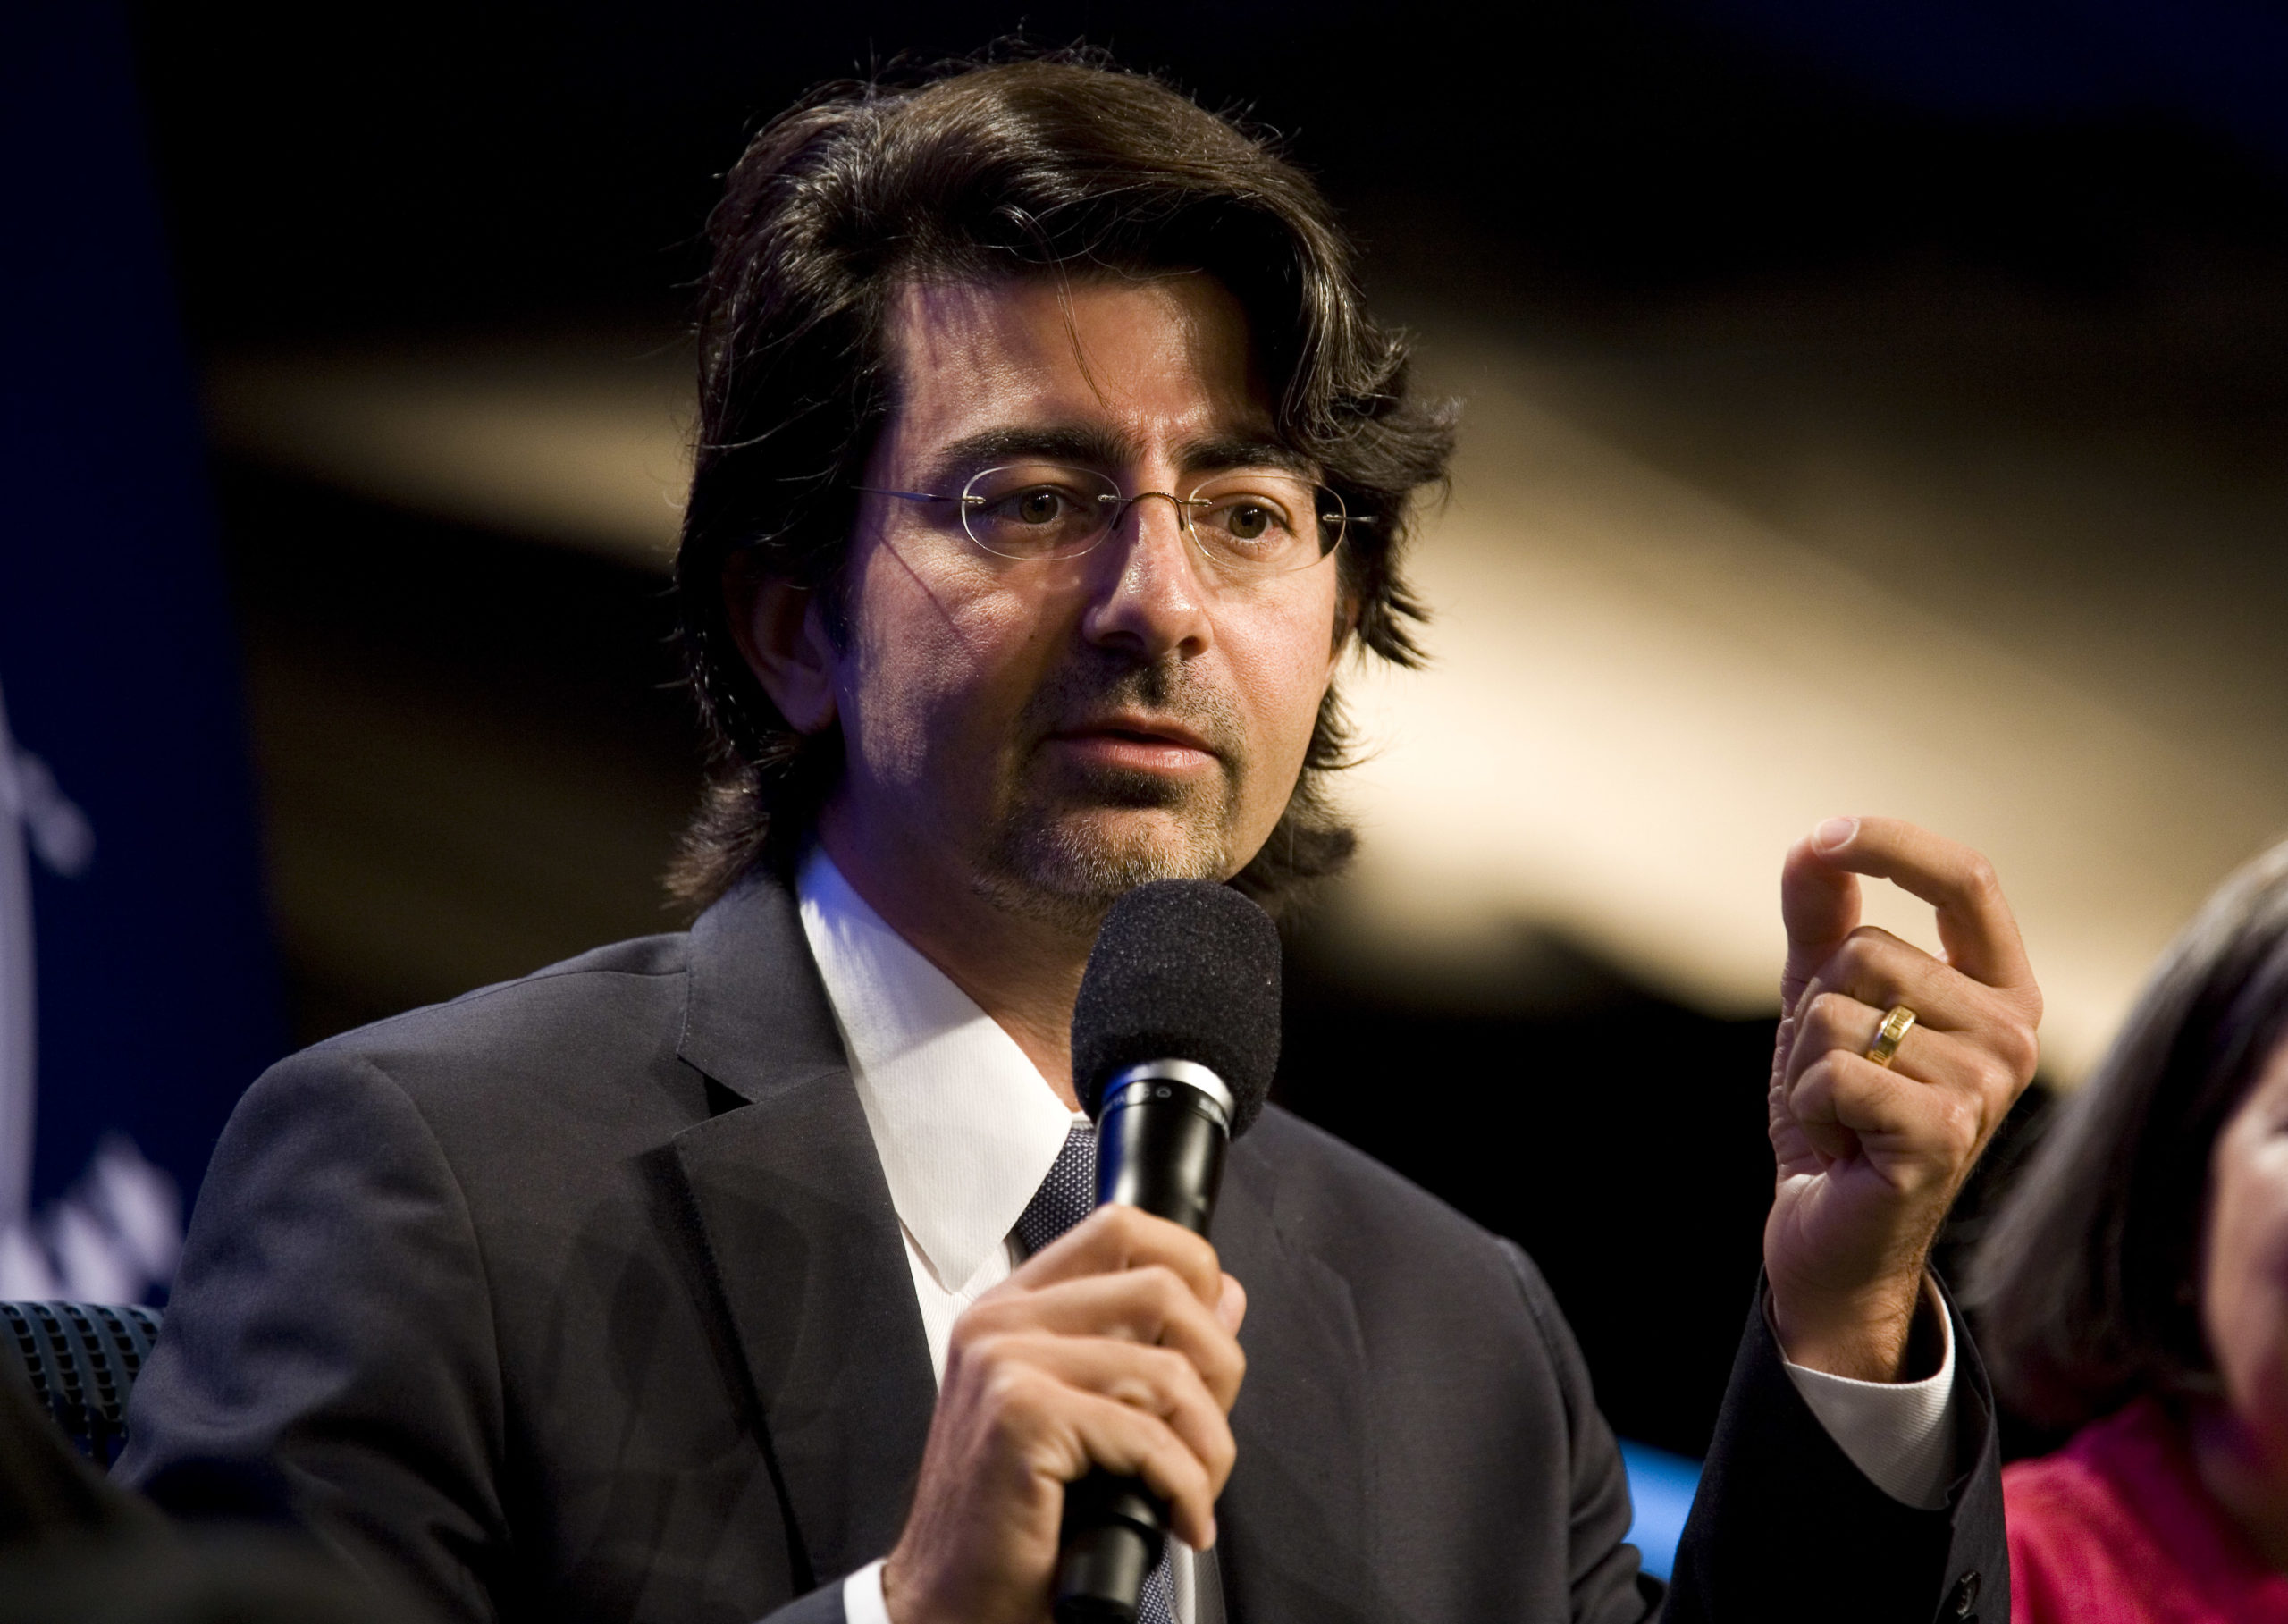 eBay founder Pierre Omidyar speaks during the panel session Democracy and Voice: Technology For Citizen Empowerment and Human Rights during the annual Clinton Global Initiative (CGI) on September 23, 2010 in New York City. (Photo by Brian Harkin/Getty Images)